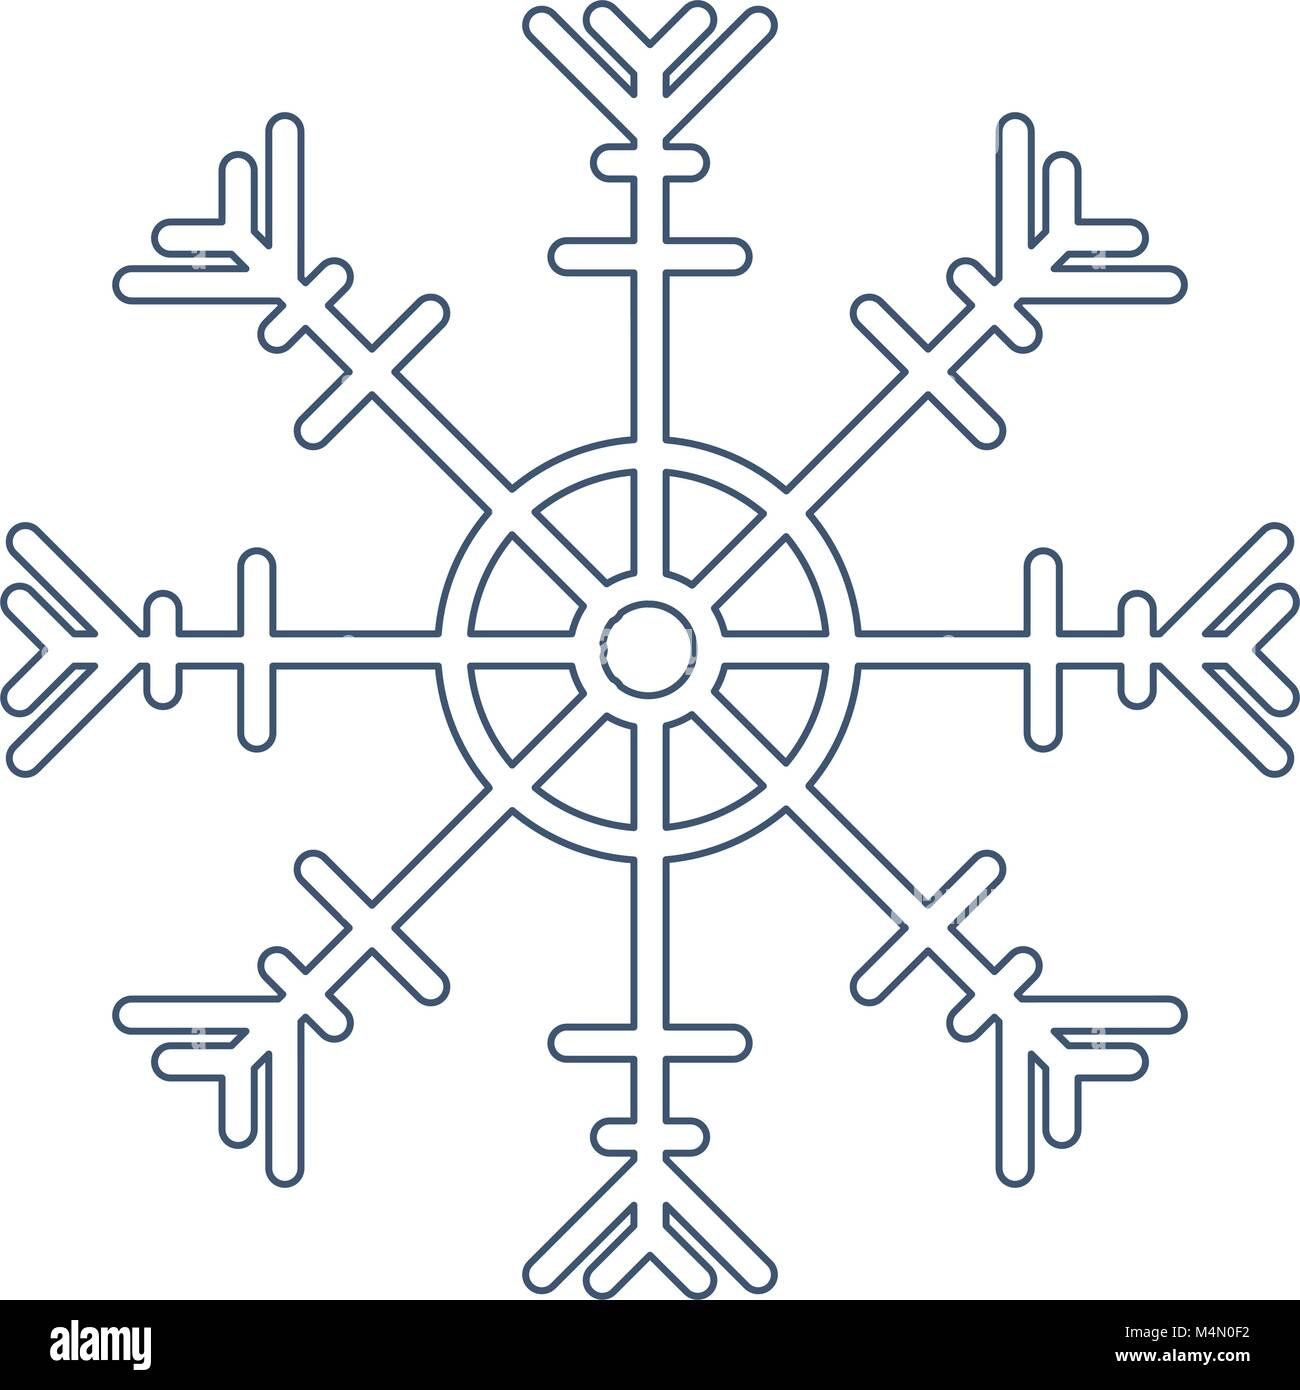 snowflake silhouette isolated icon - Stock Image